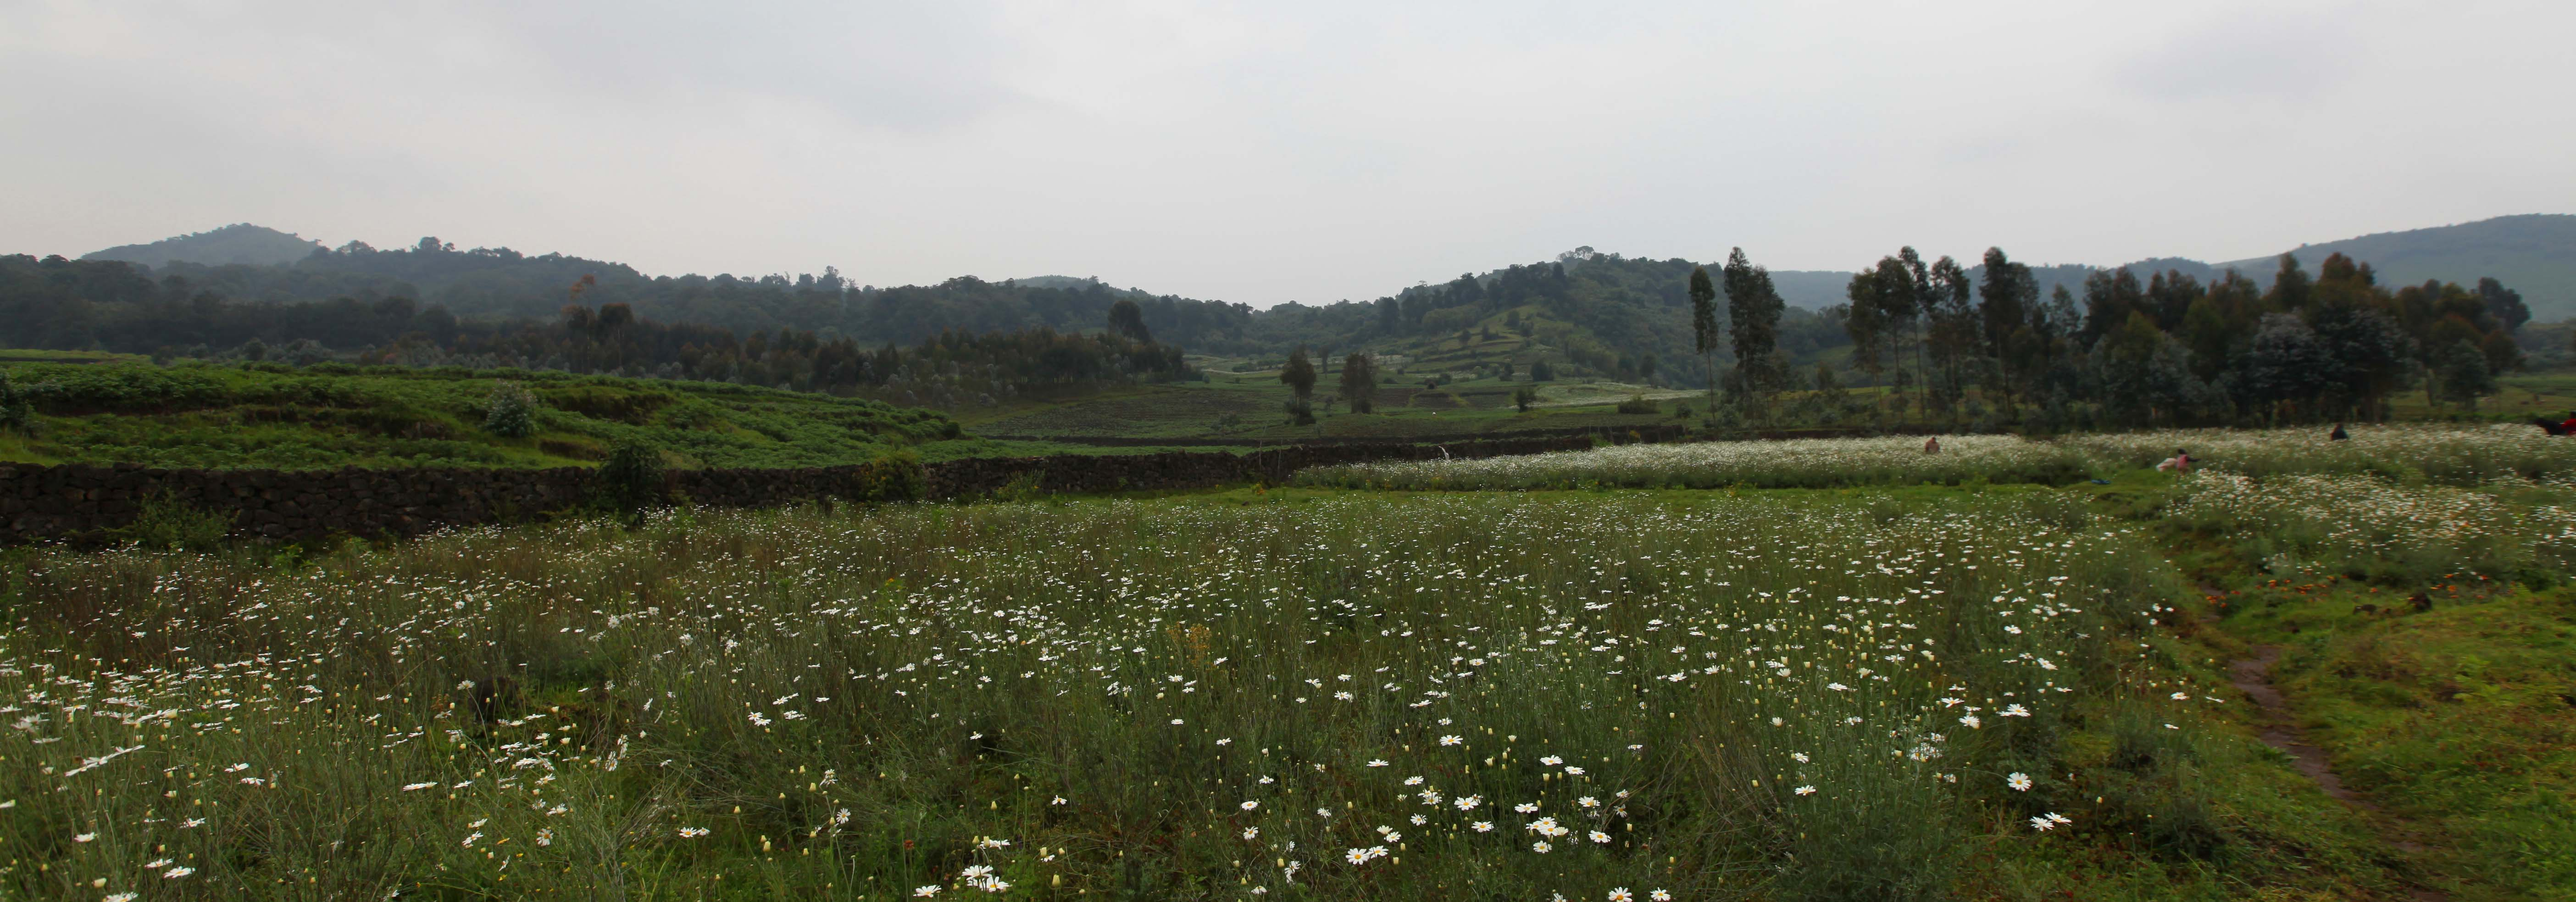 Farmland near Virunga